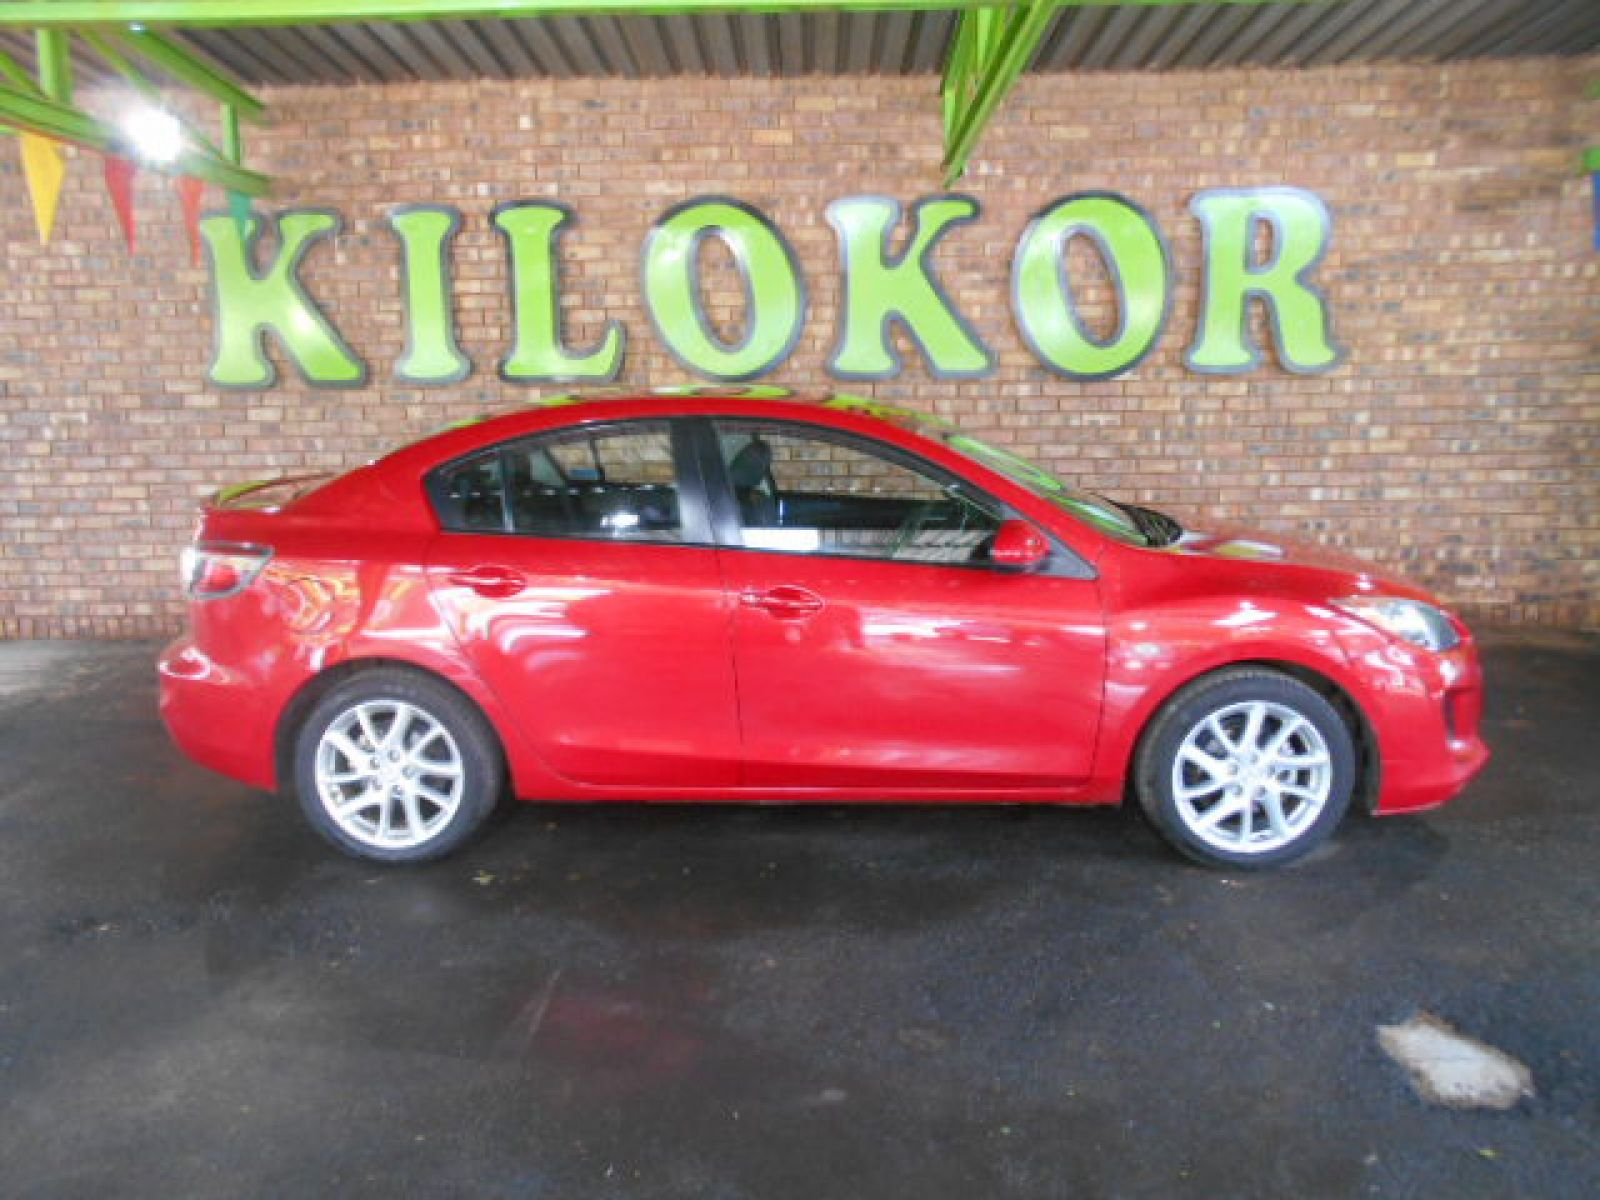 2012 Mazda 3 R 149 990 For Sale Kilokor Motors